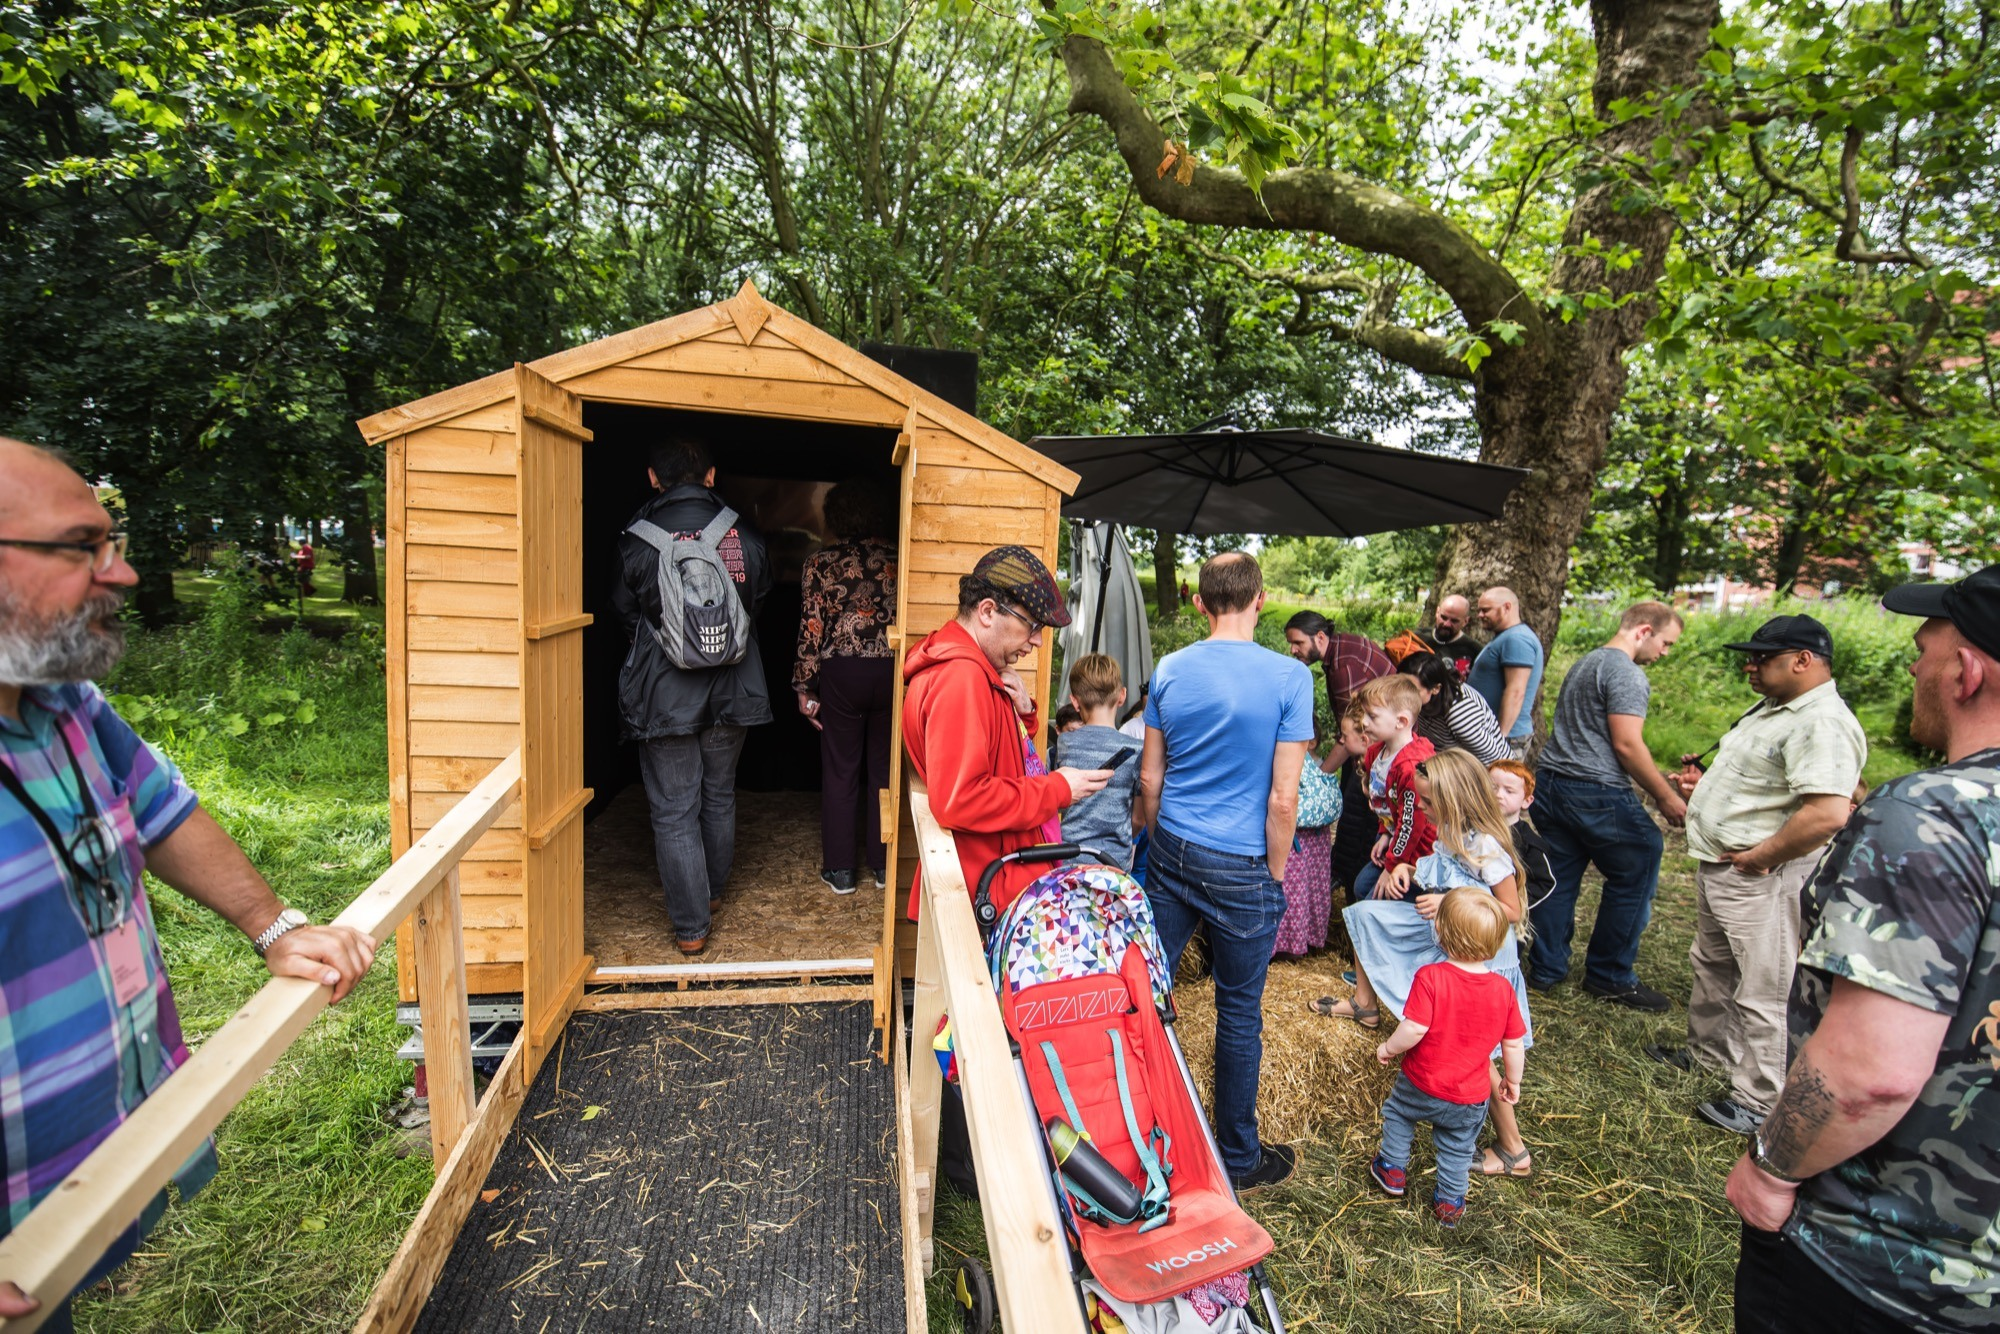 people waiting outside a wooden shed